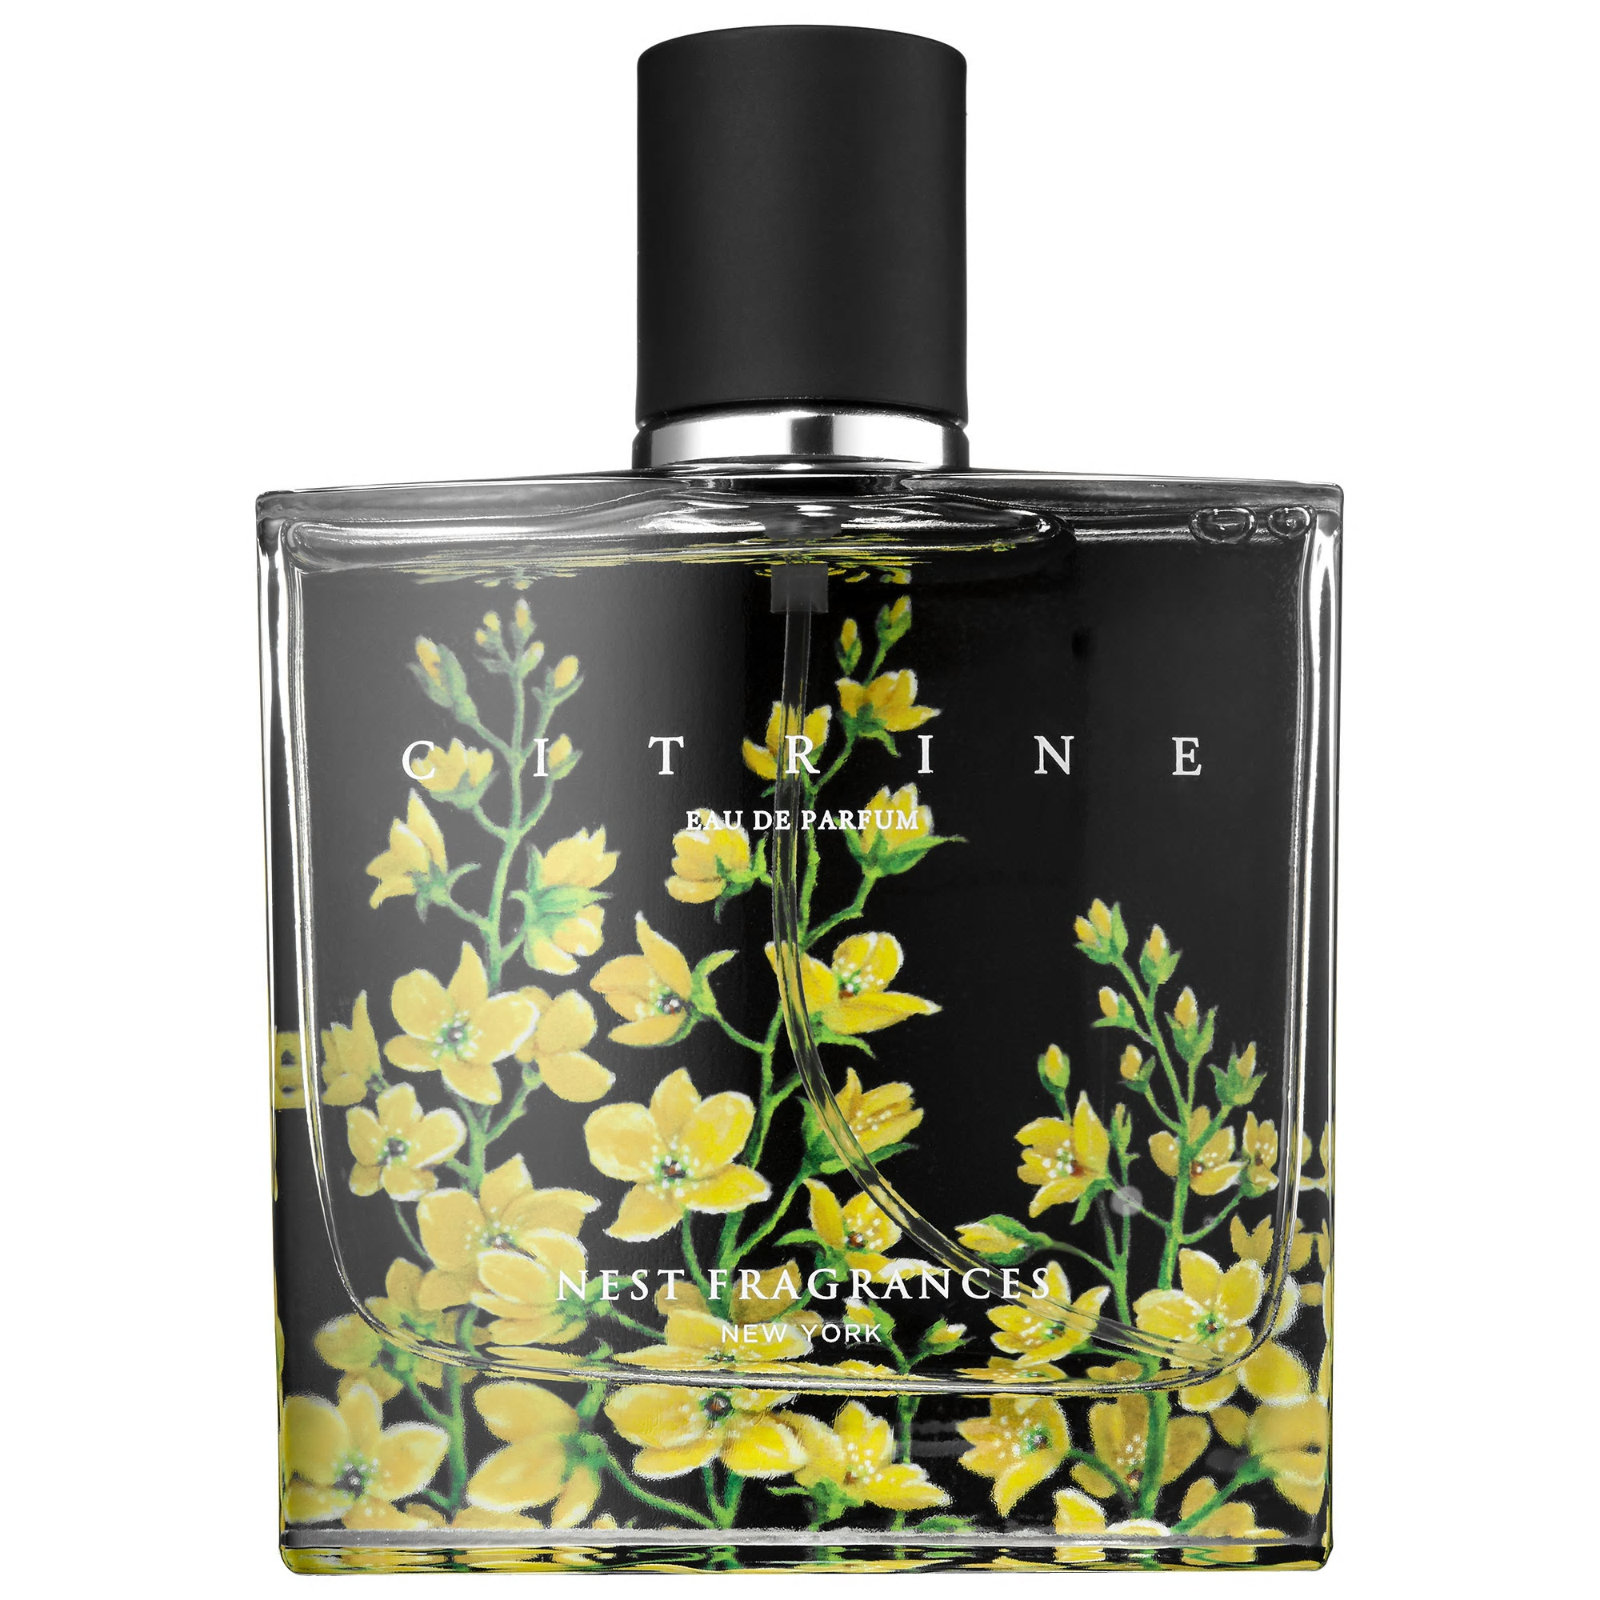 Nest Fragrances Citrine Eau de Parfum Splash 0.25 oz New Pur